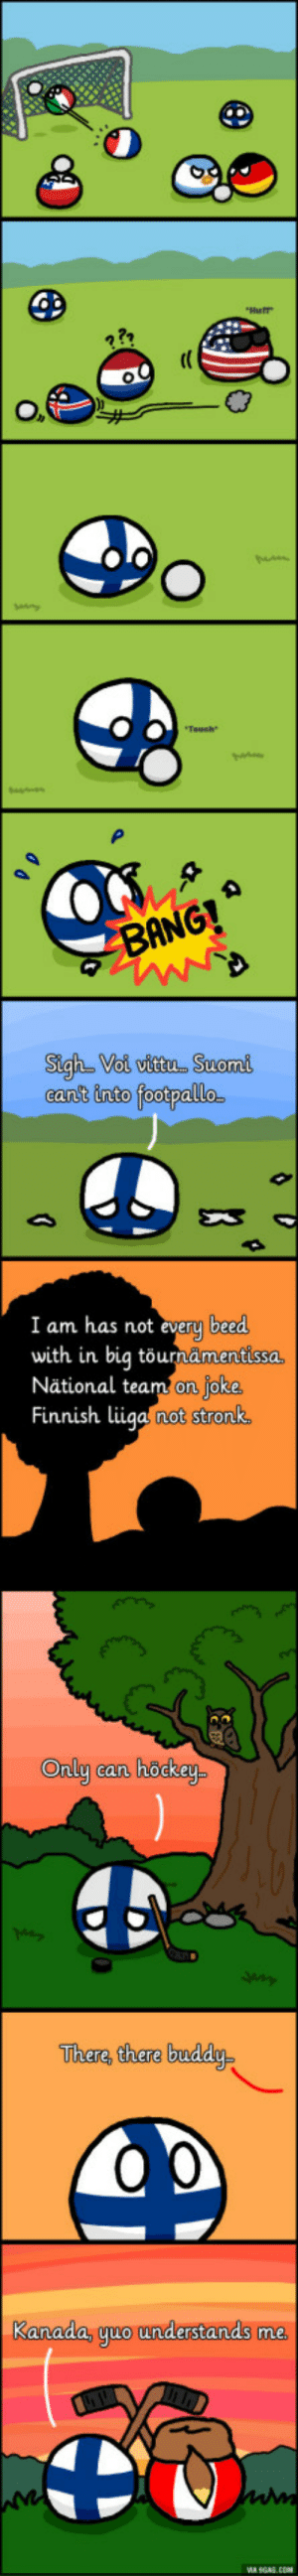 Sidelined: eant into footpallo.  I am has not everu beed  with in big to  Nätional team on ioke  Finnish lü  urnämentissa  iga not stronk  Only can höckay-  The鸡there buddy  Kanada. uuo uderstands me  MA SGAS.COM Sidelined